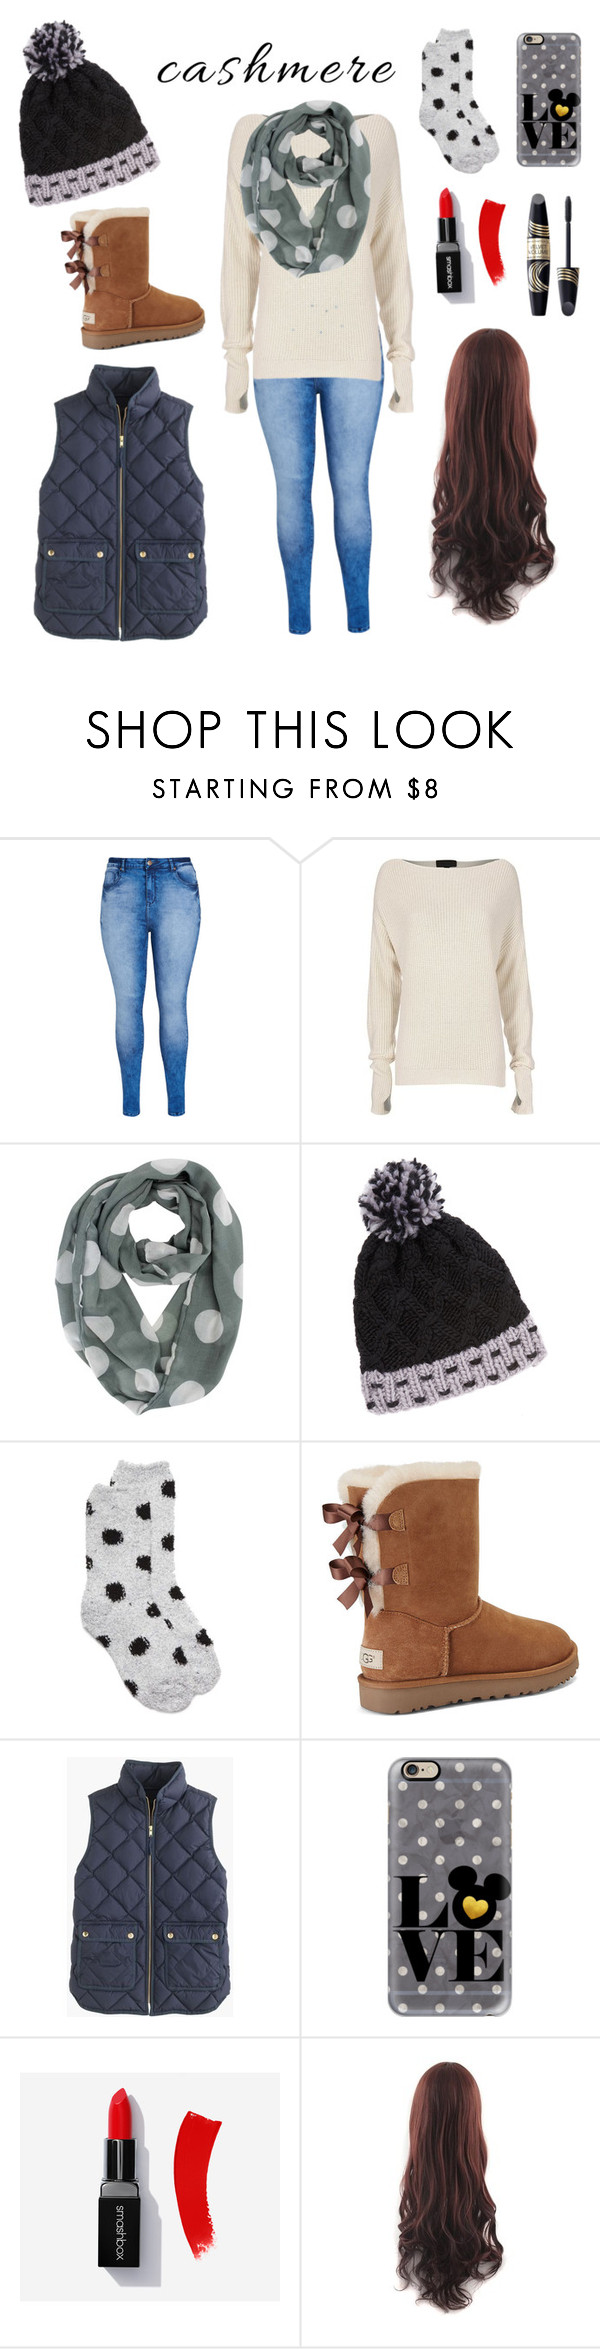 """""""Winter's here"""" by kitty16a ❤ liked on Polyvore featuring City Chic, Exclusive for Intermix, New Directions, UGG, J.Crew, Casetify and Max Factor"""